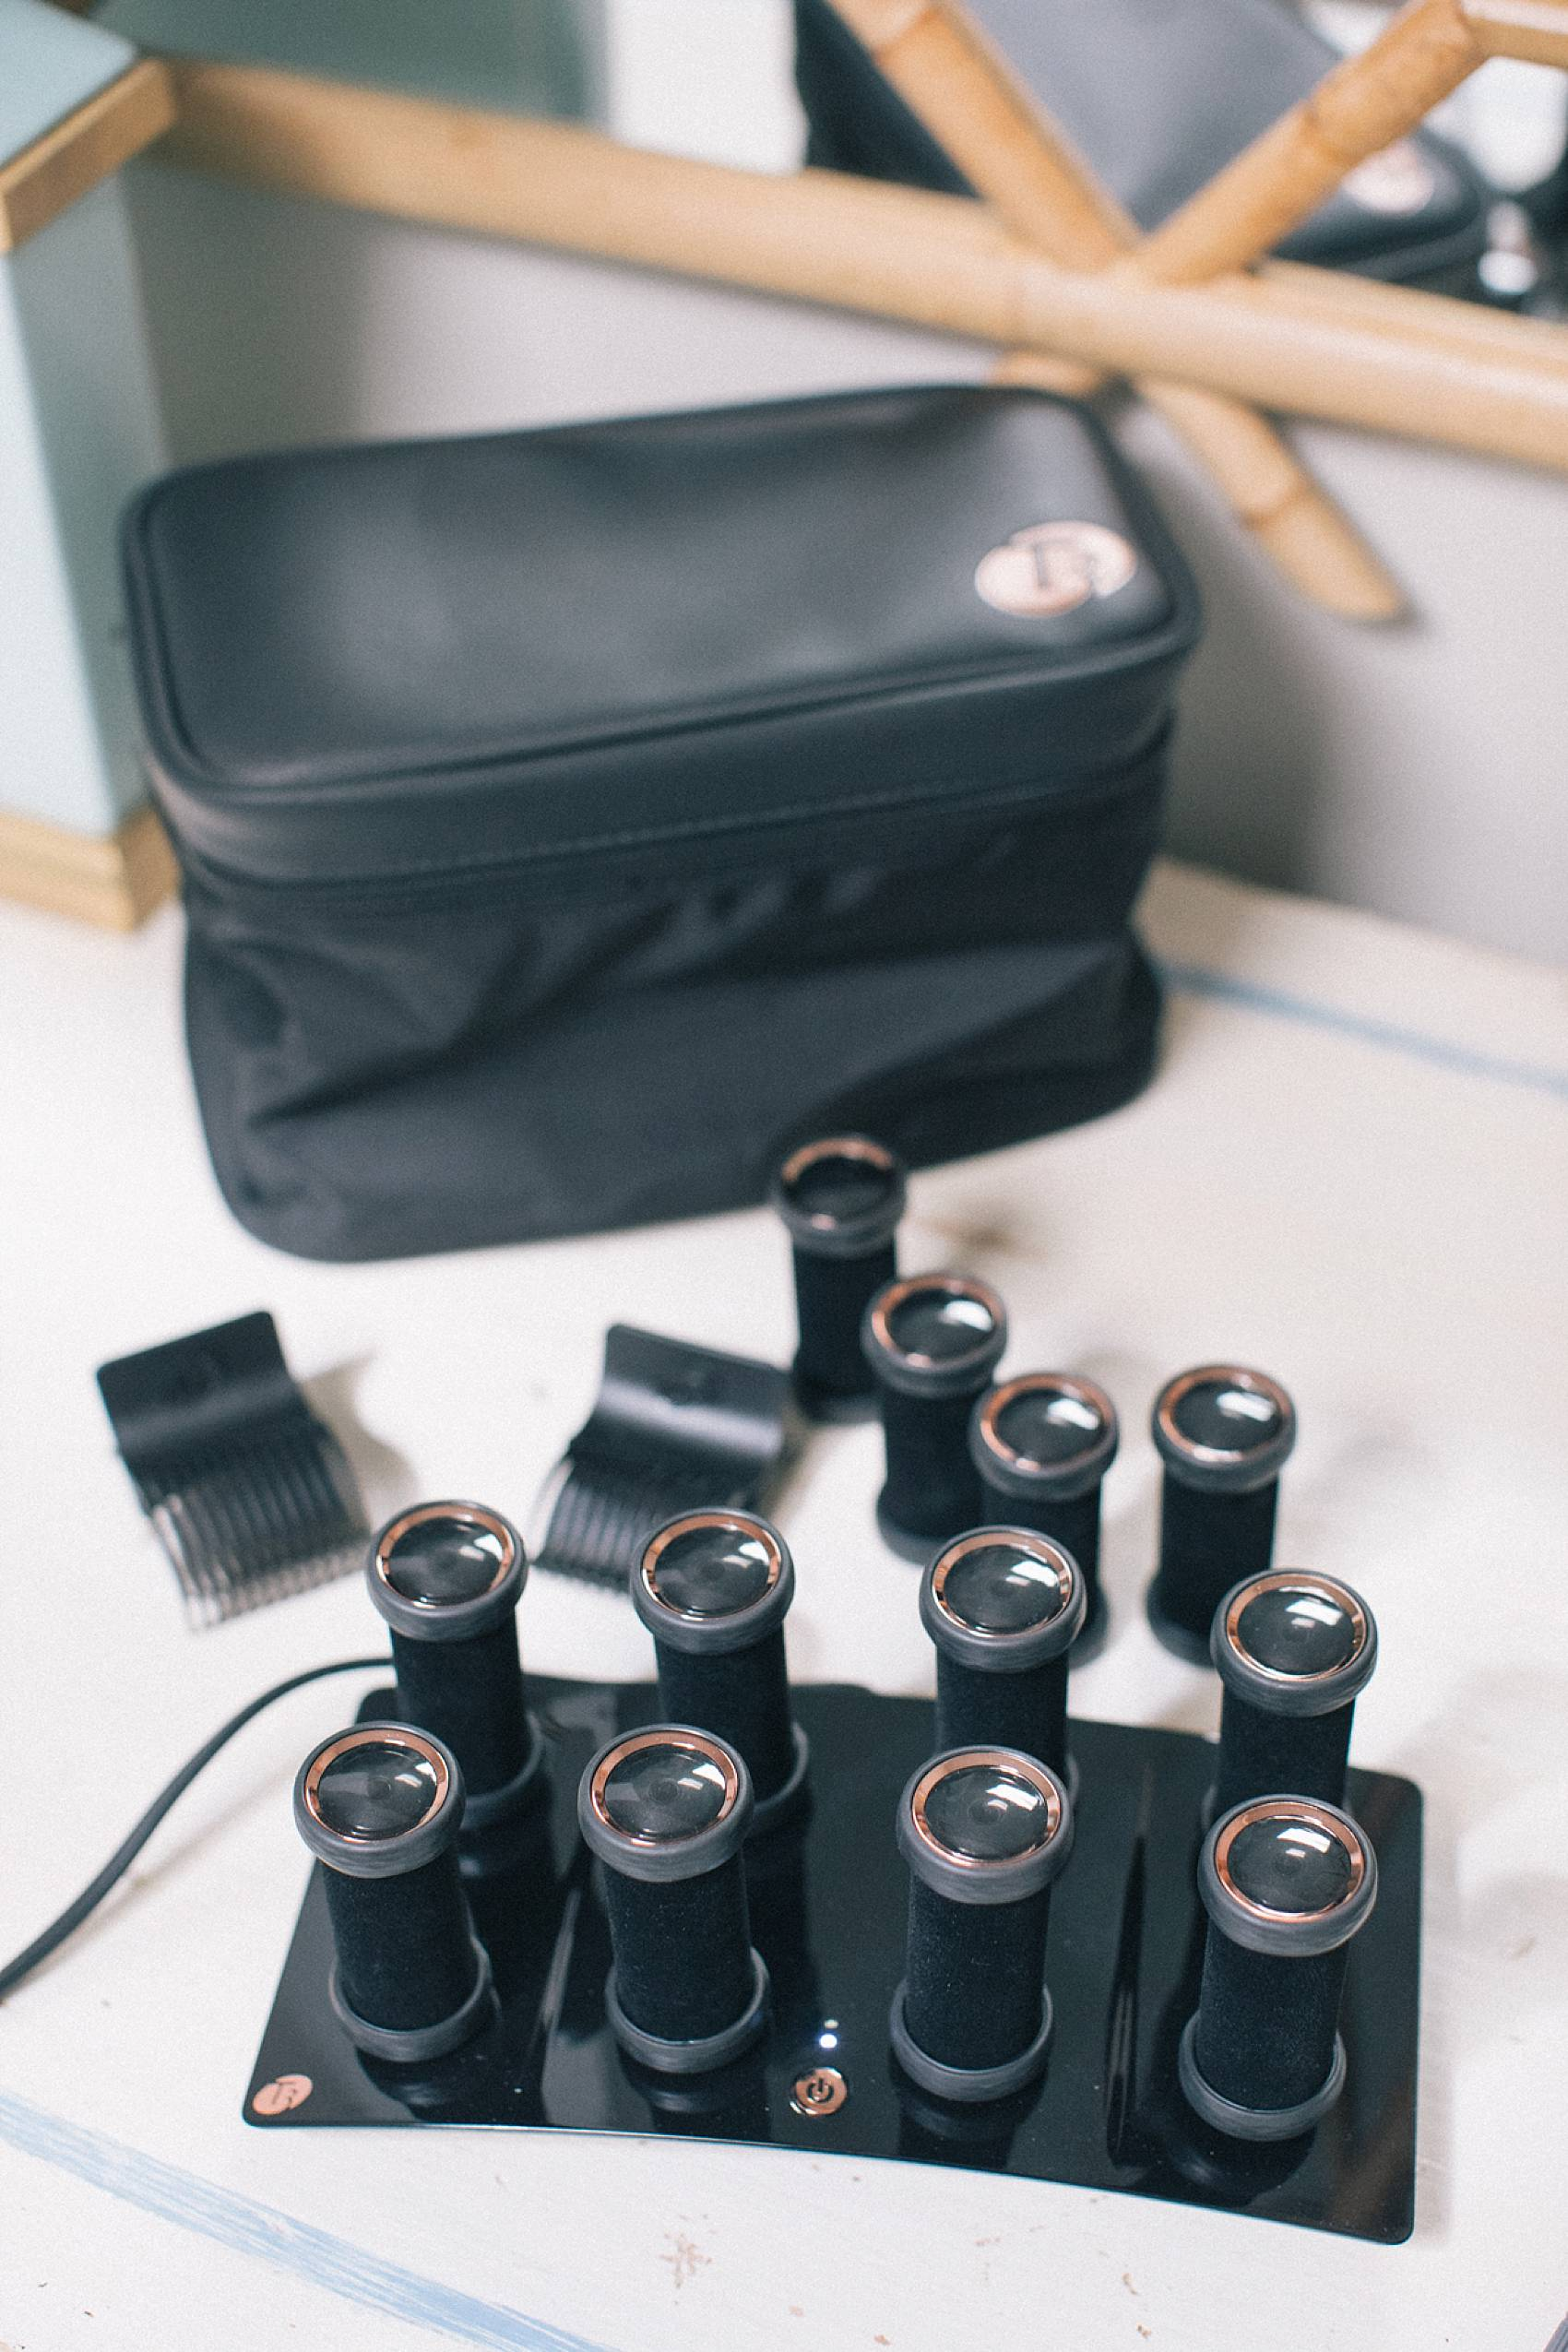 t3 of volumizing hot rollers luxe on desk clips and extra rollers in bag